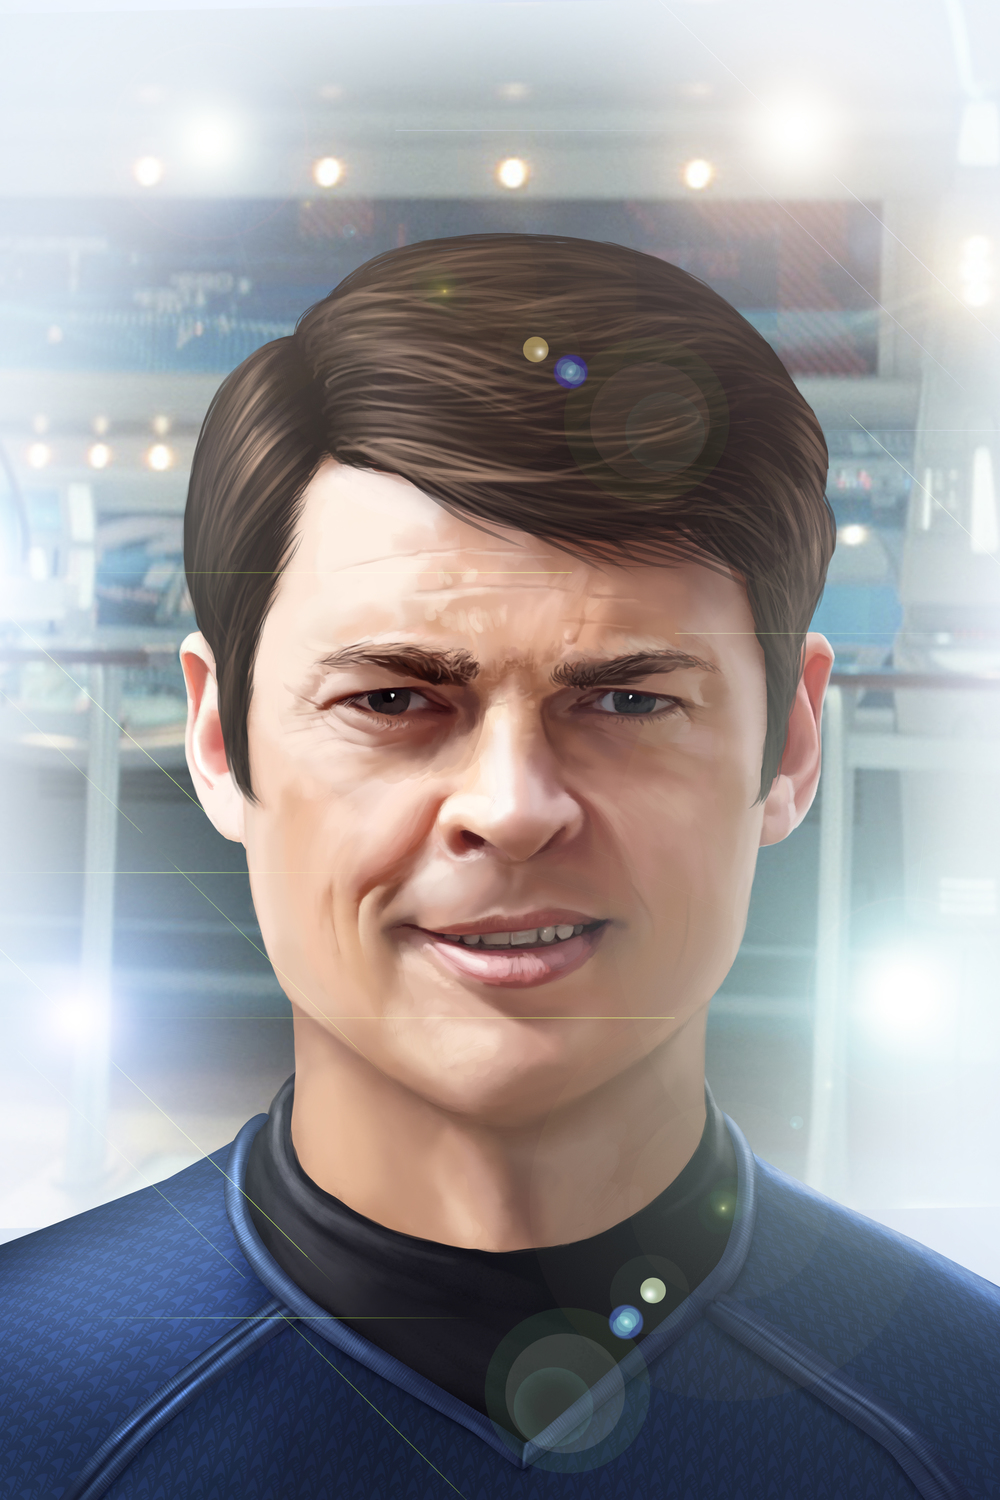 Karl Urban as Dr. Leonard 'Bones' McCoy